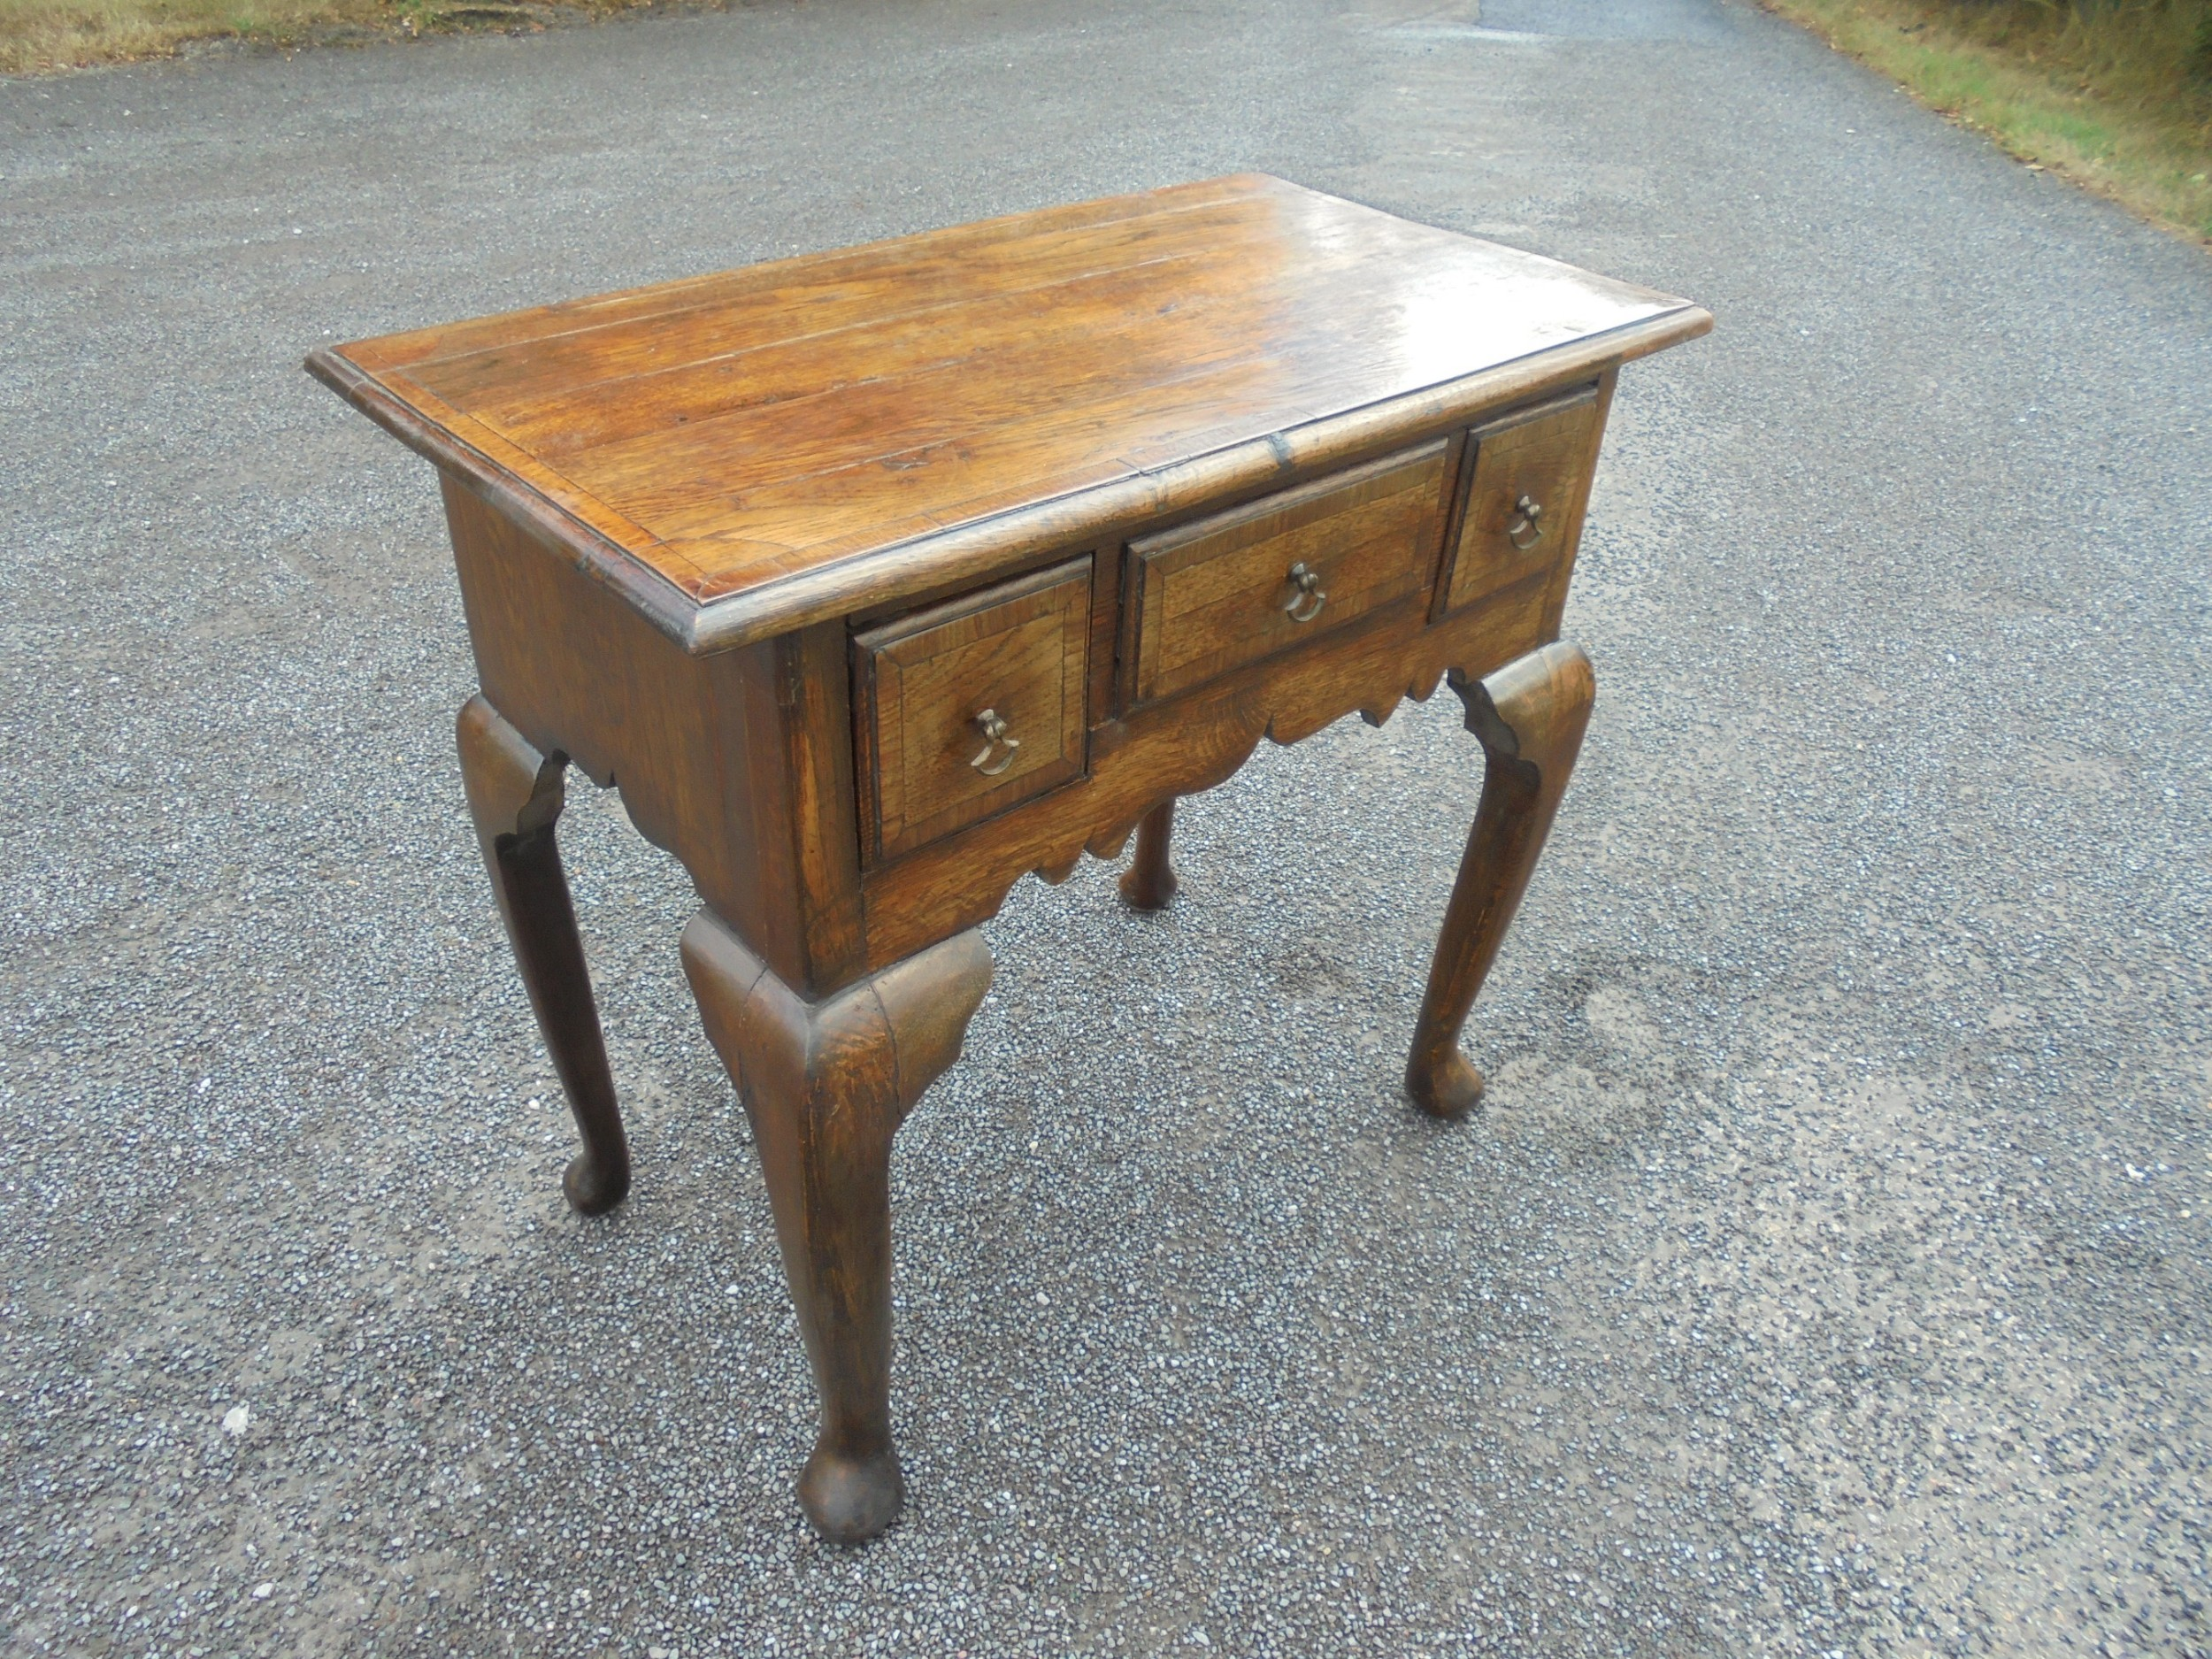 19th century oak and ash lowboy side table